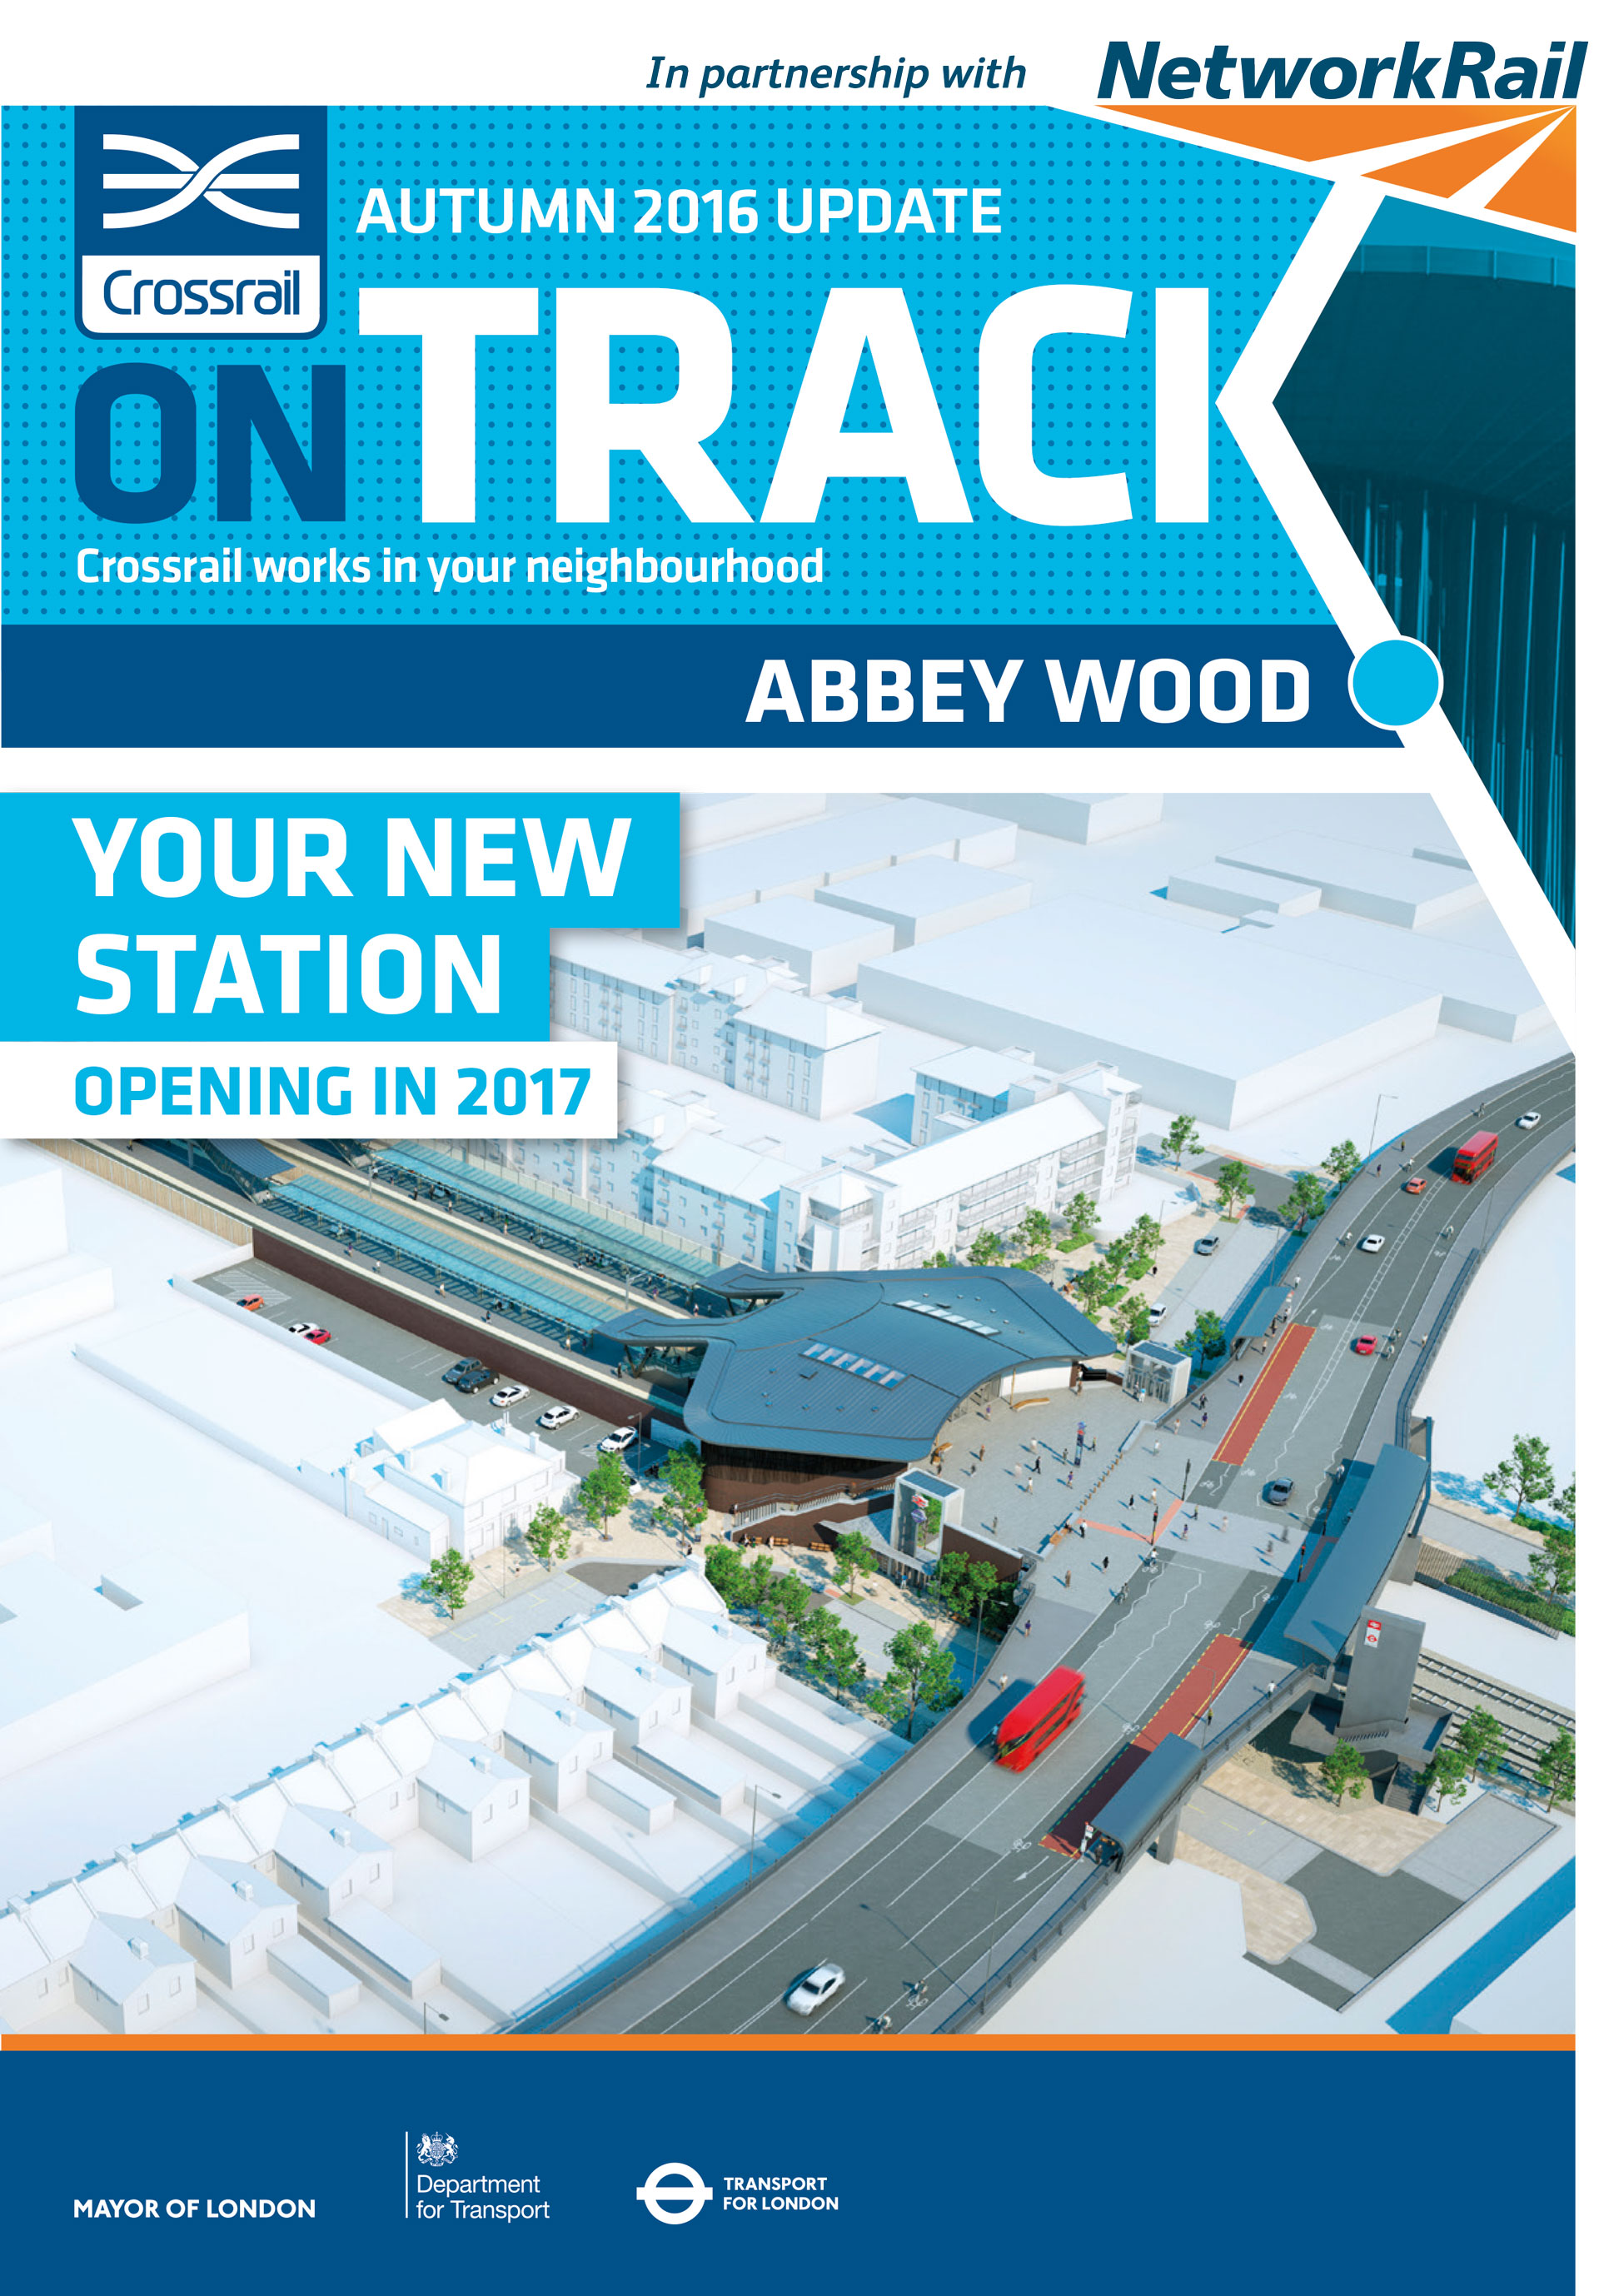 OnTrack Abbey Wood Station